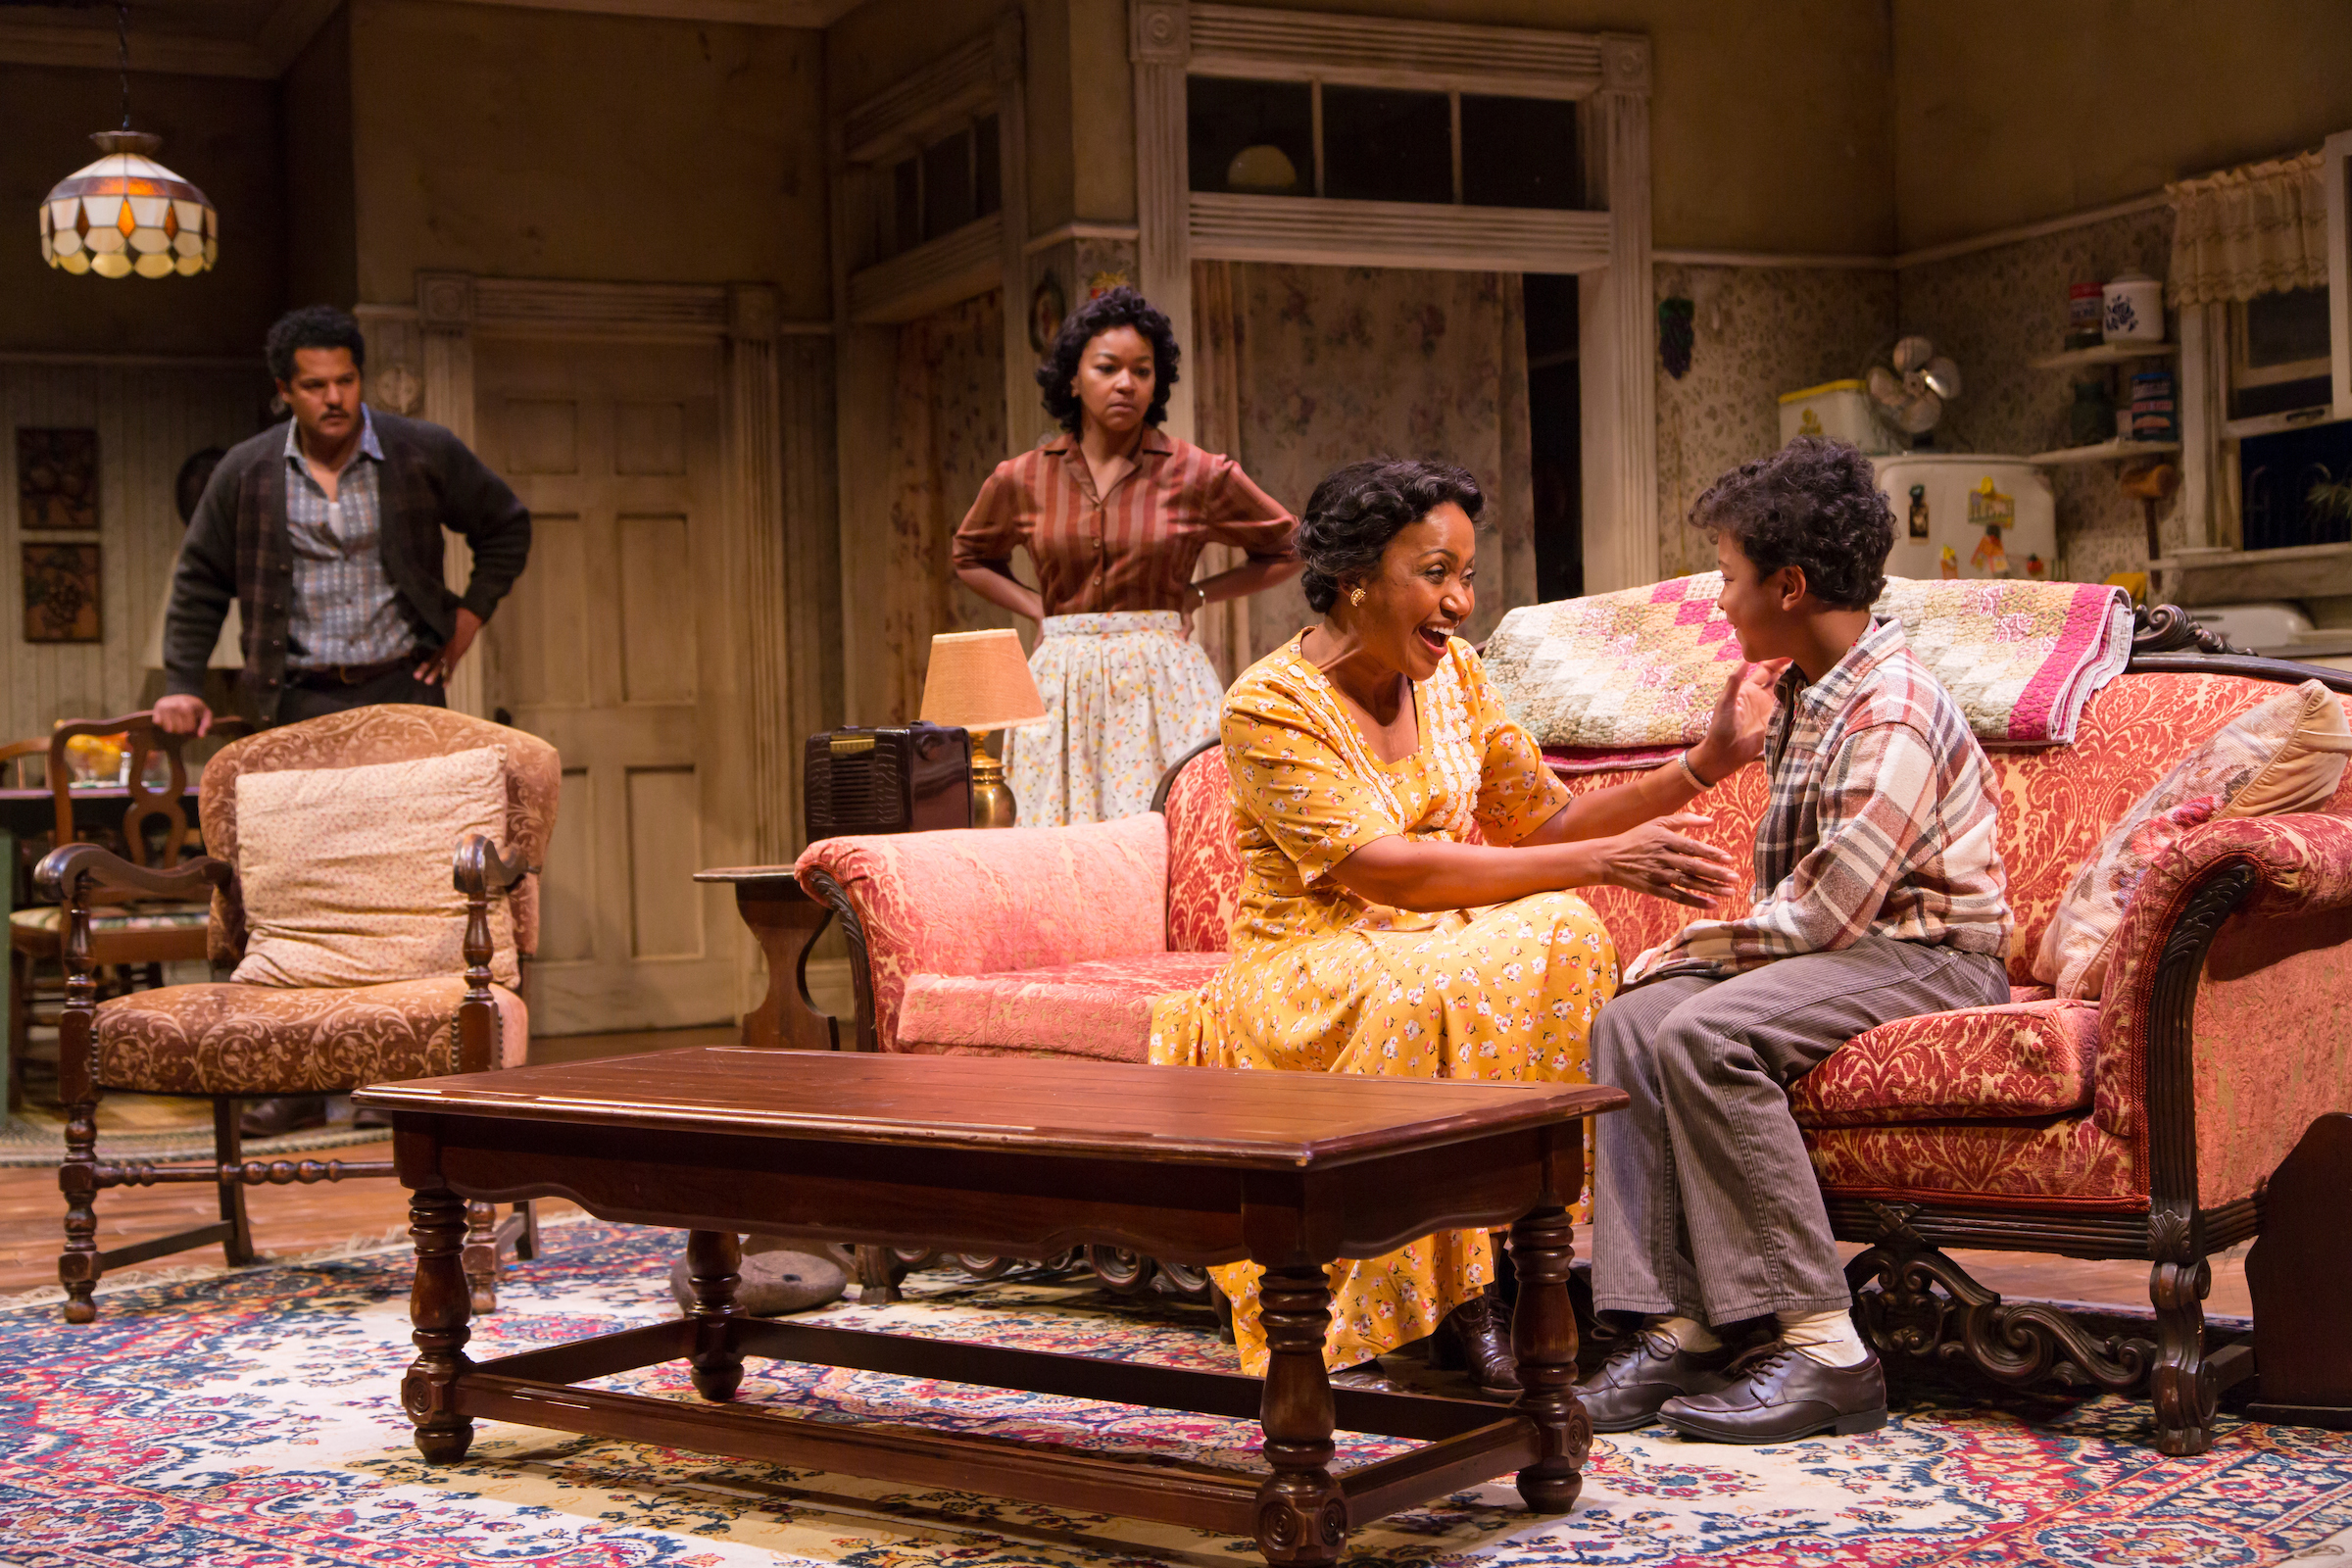 A Raisin In The Sun Cast Deliver Performances In A Play